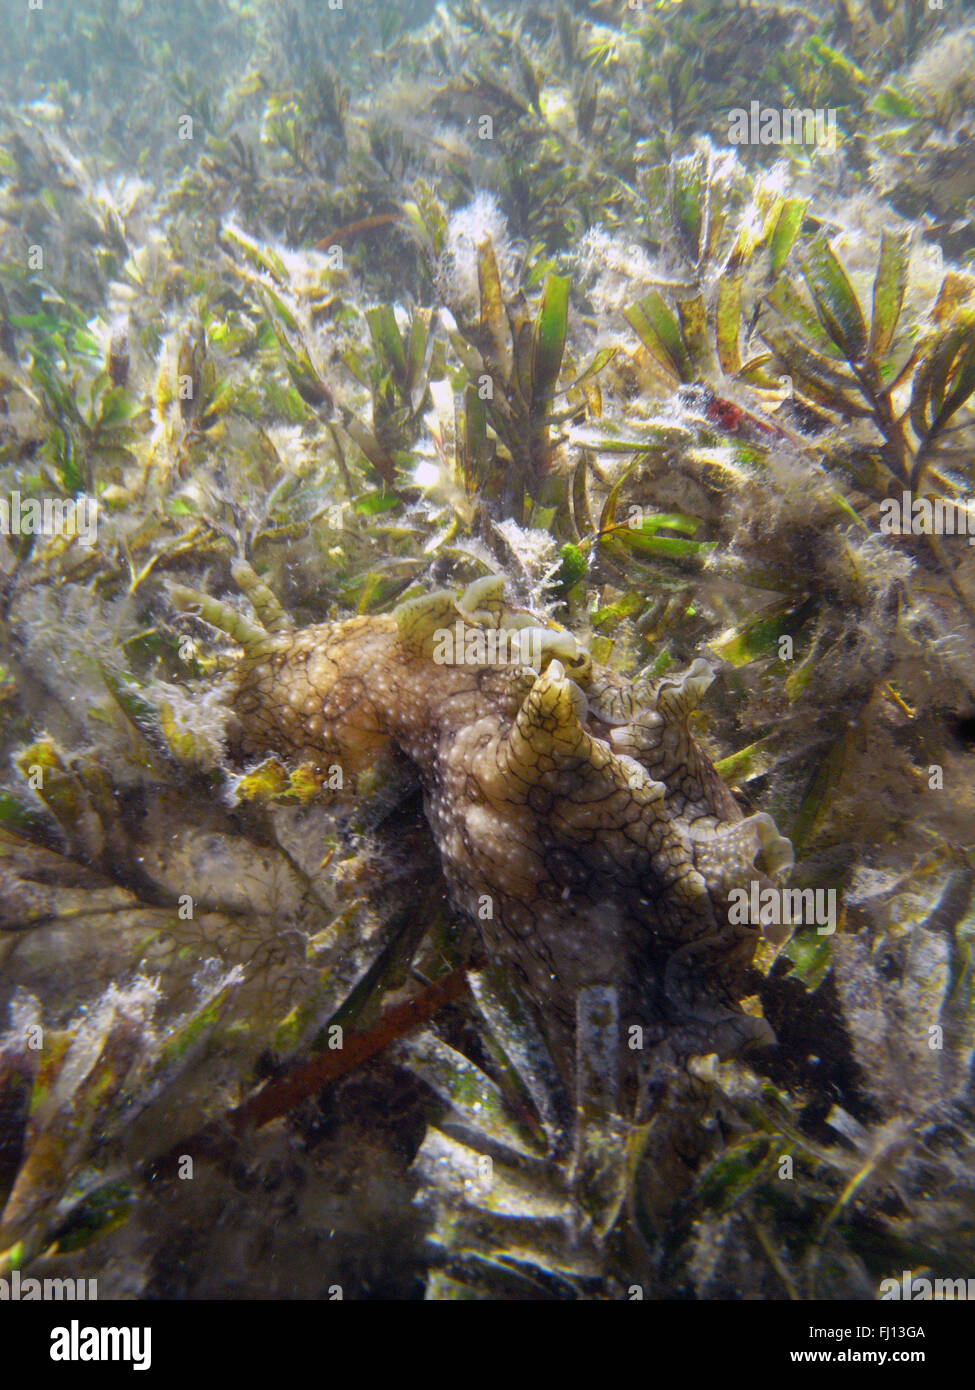 Large sea hare (Aplysia dactylomela) extremely well-camouflaged on seagrass meadow (Amphibolus sp.), Rottnest Island, - Stock Image